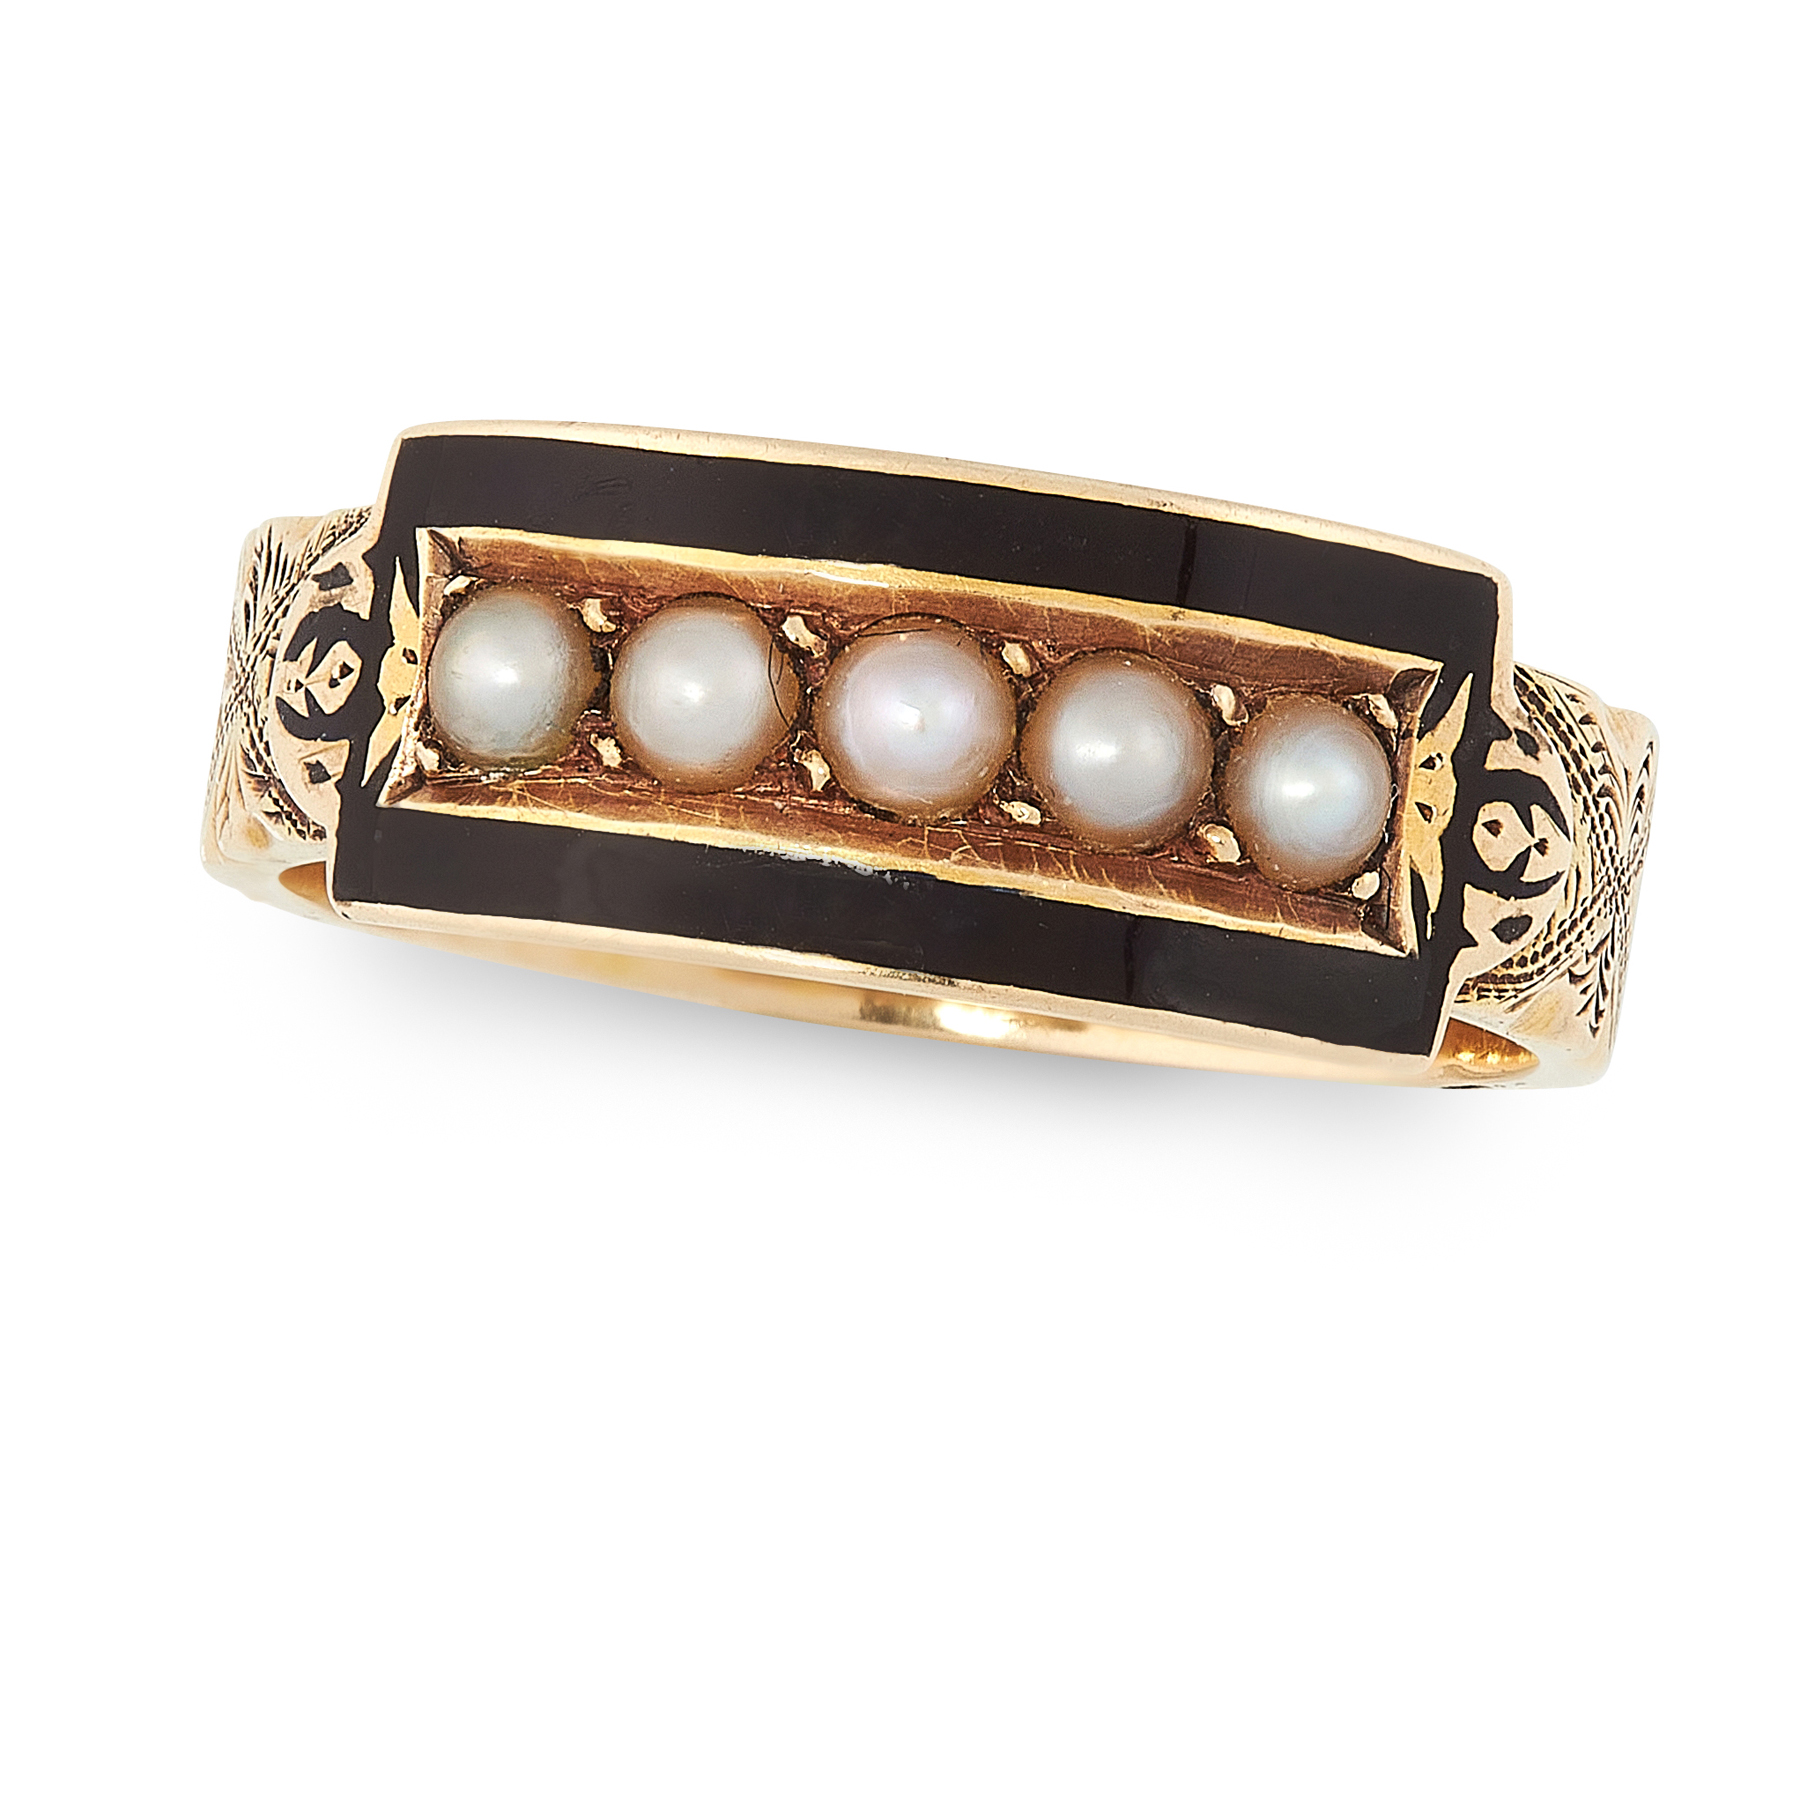 AN ANTIQUE VICTORIAN PEARL AND ENAMEL RING CIRCA 1886 in 15ct yellow old, the band with engraved